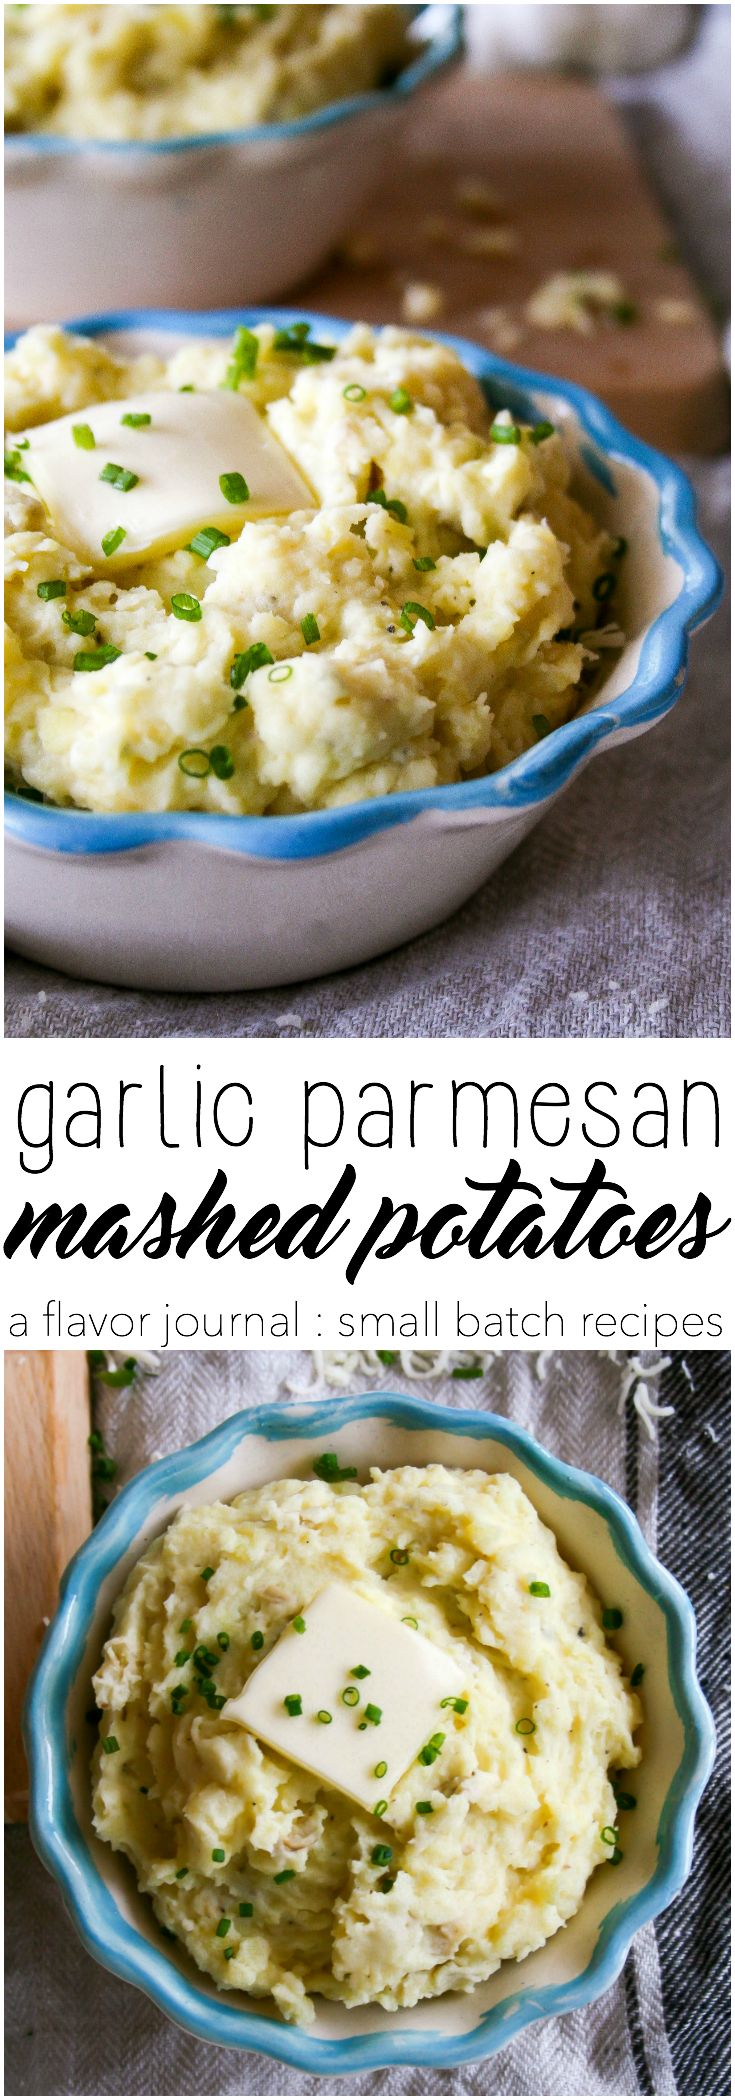 creamy mashed potatoes loaded with garlic and parmesan cheese. easy to make and full of flavor, they're a quick potato side dish for any dinner occasion. | a flavor journal  garlic parmesan mashed potatoes : a small batch recipe for two. http://aflavorjournal.com/garlic-parmesan-mashed-potatoes/